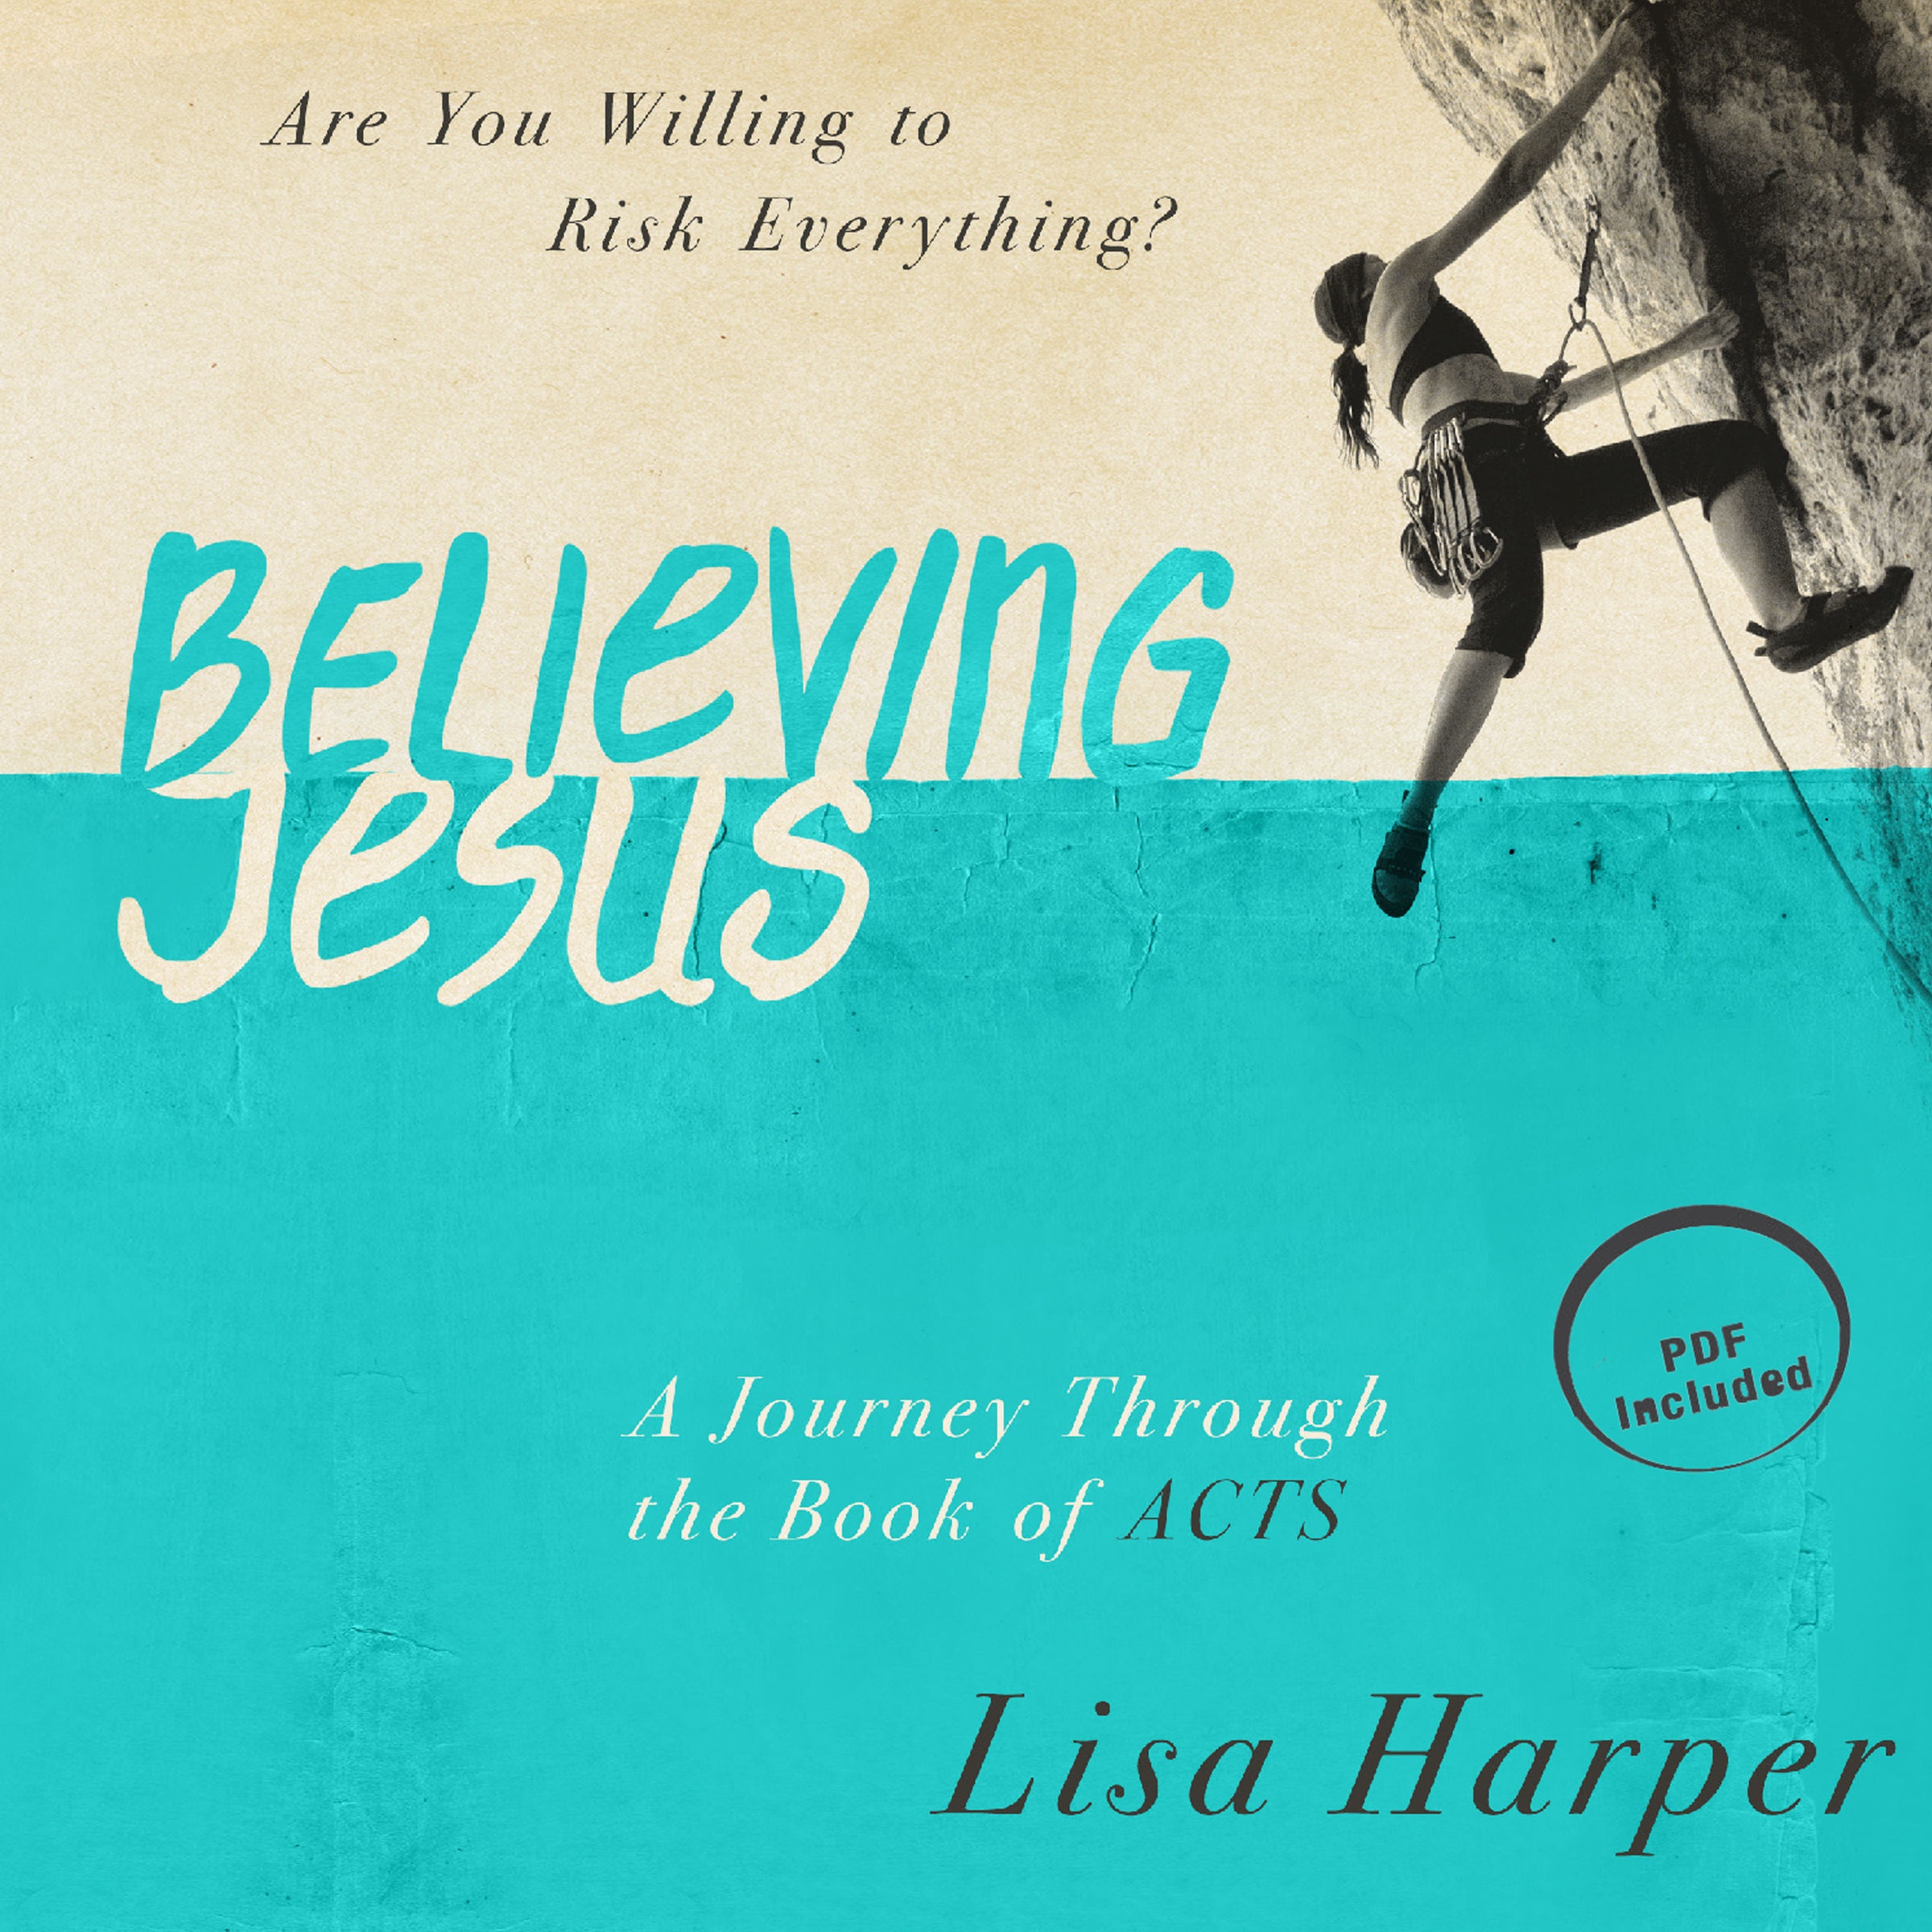 Printable Believing Jesus: Are You Willing to Risk Everything? A Journey Through the Book of Acts Audiobook Cover Art